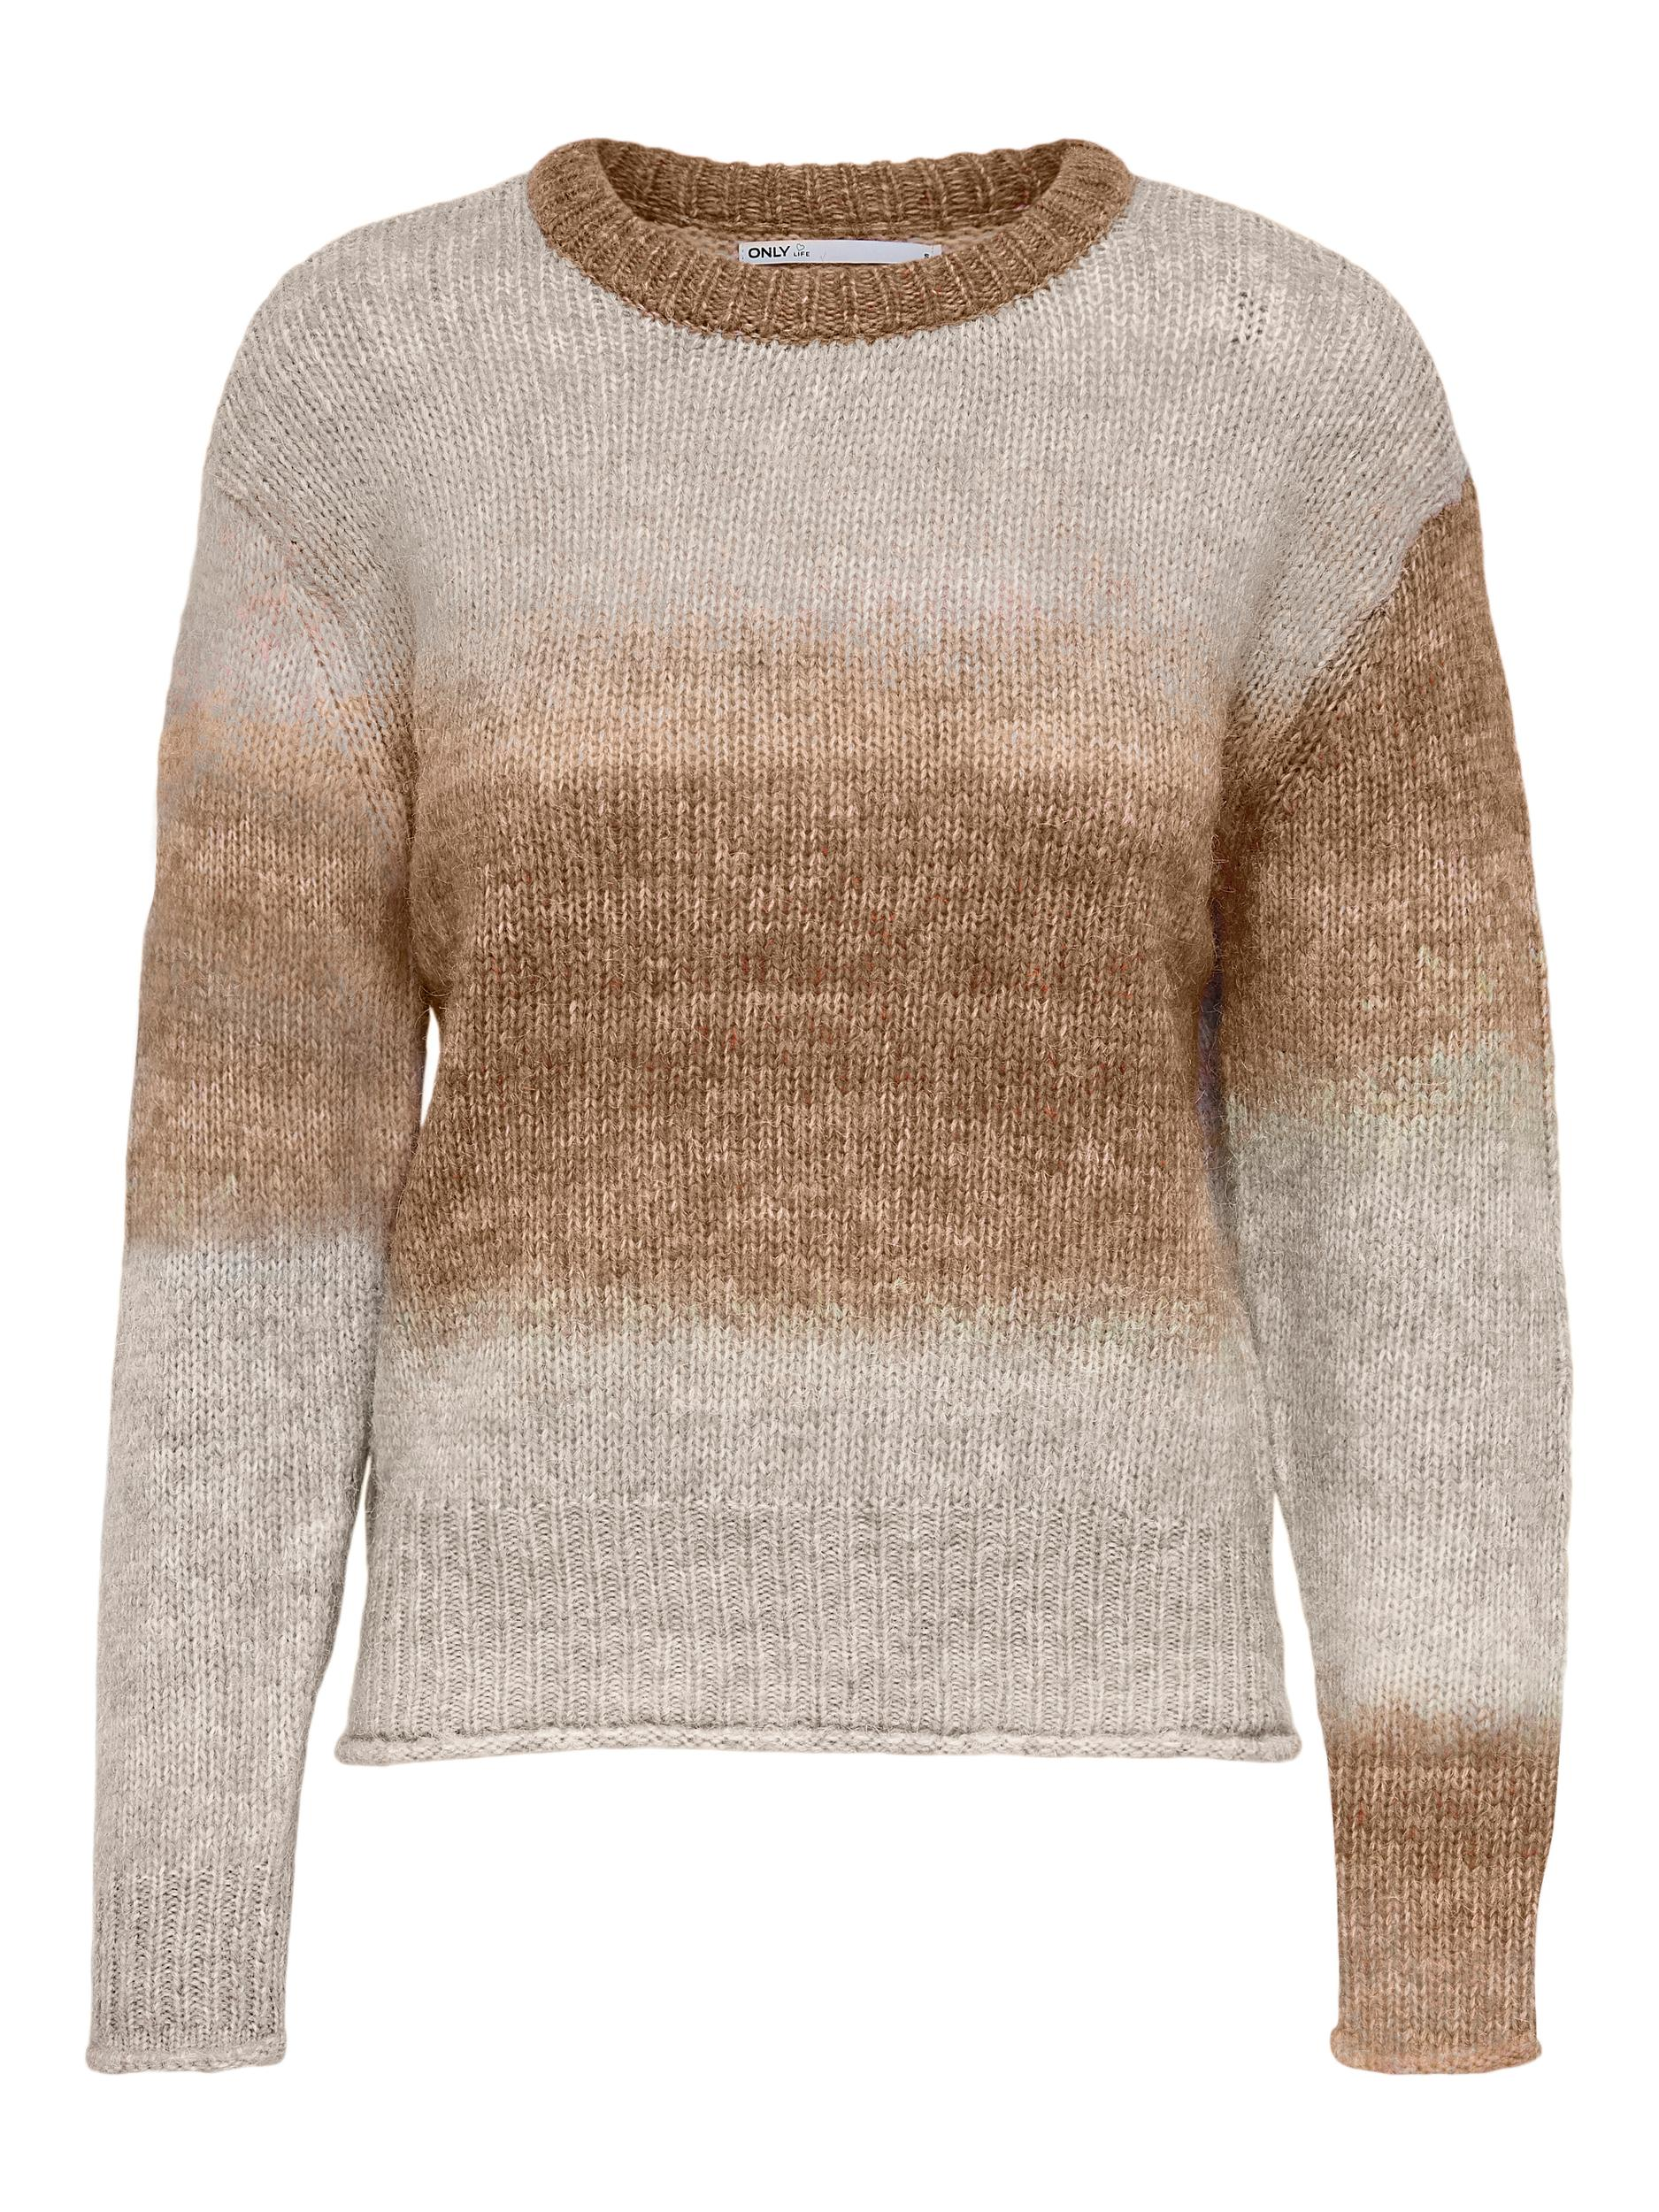 ONLY Pullover Grace in 2 Farben